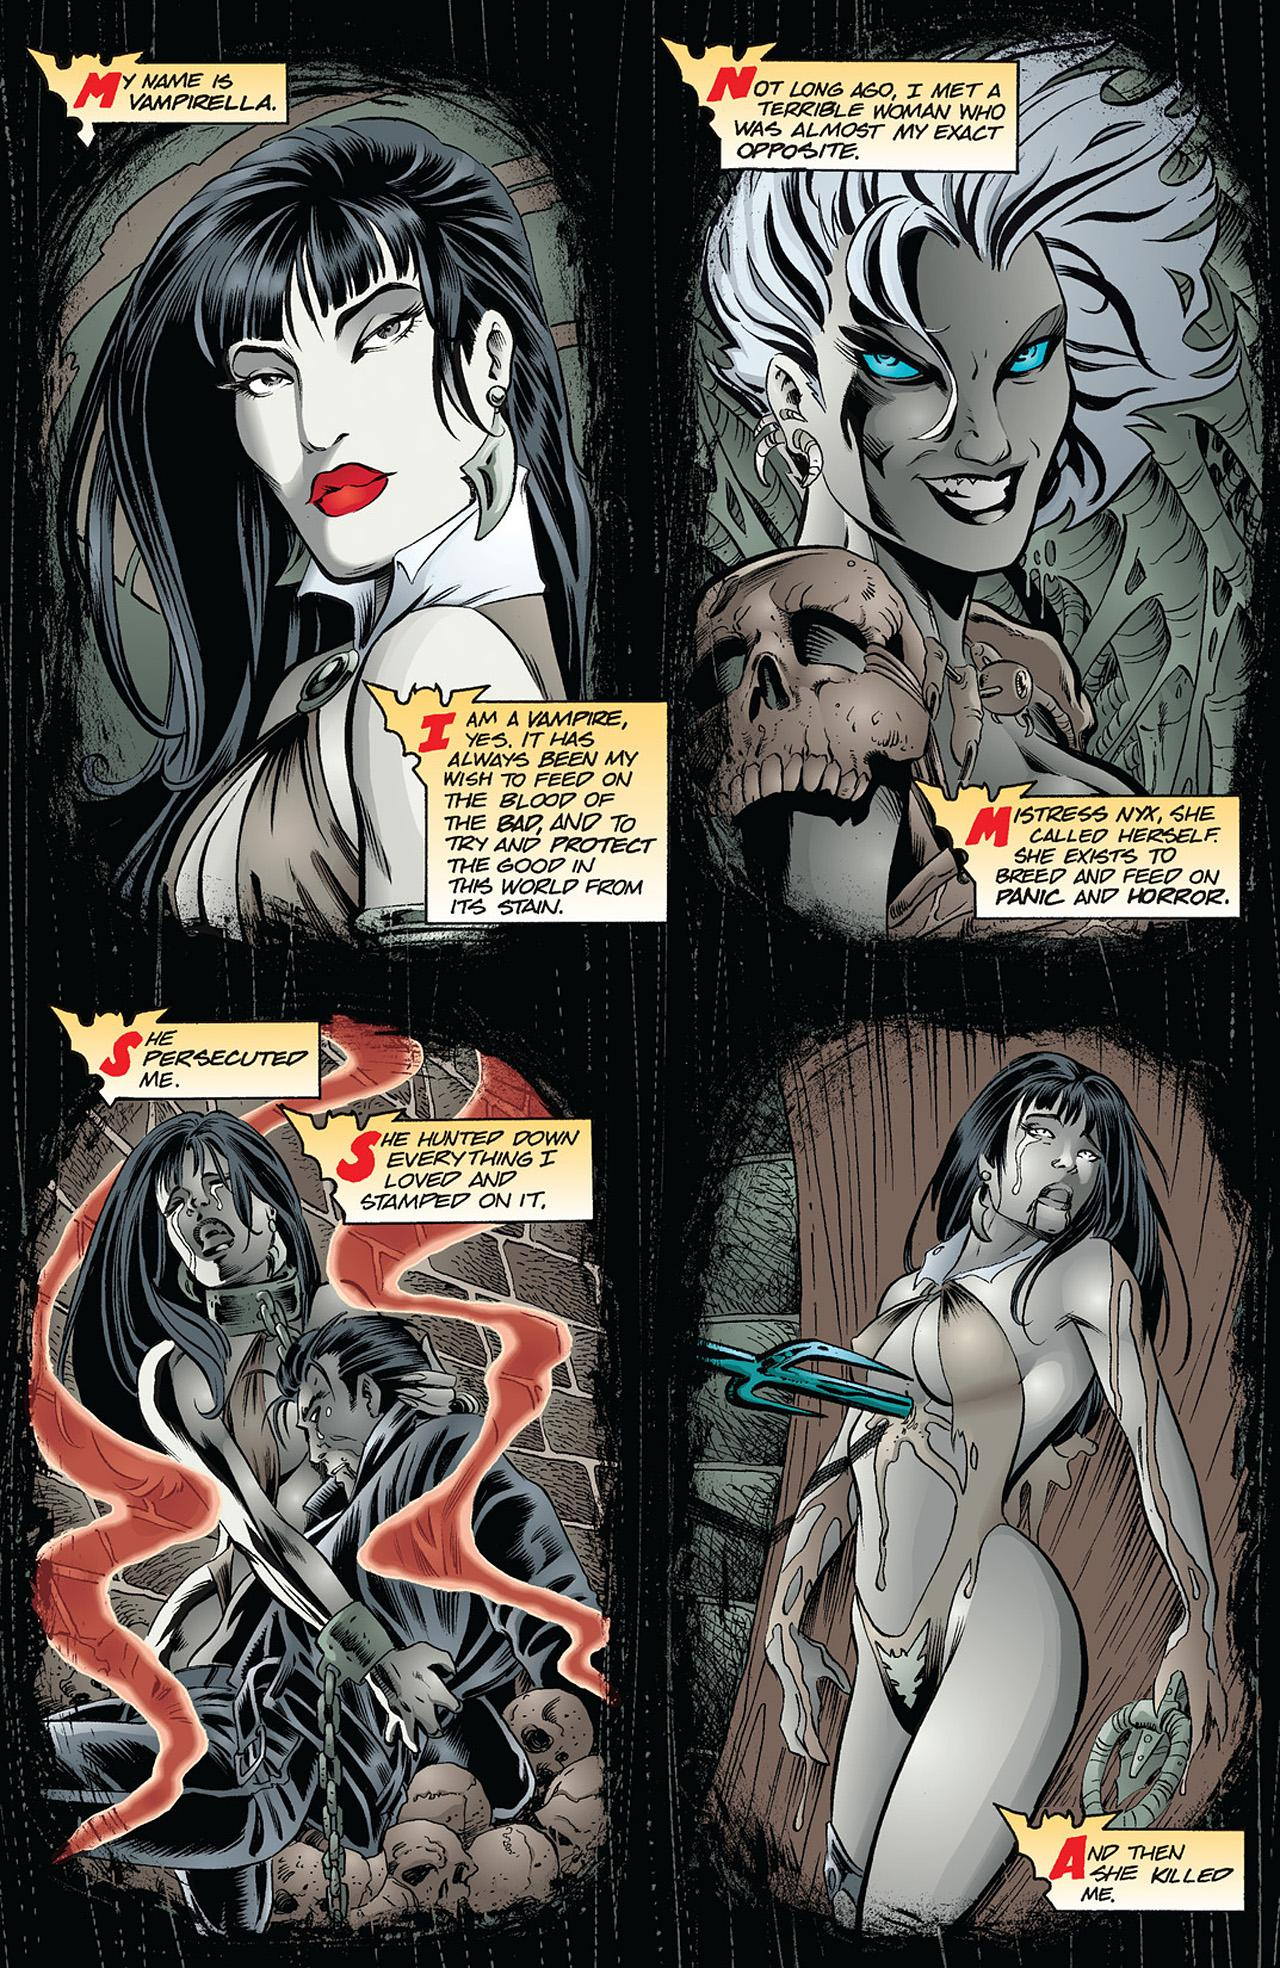 Vampirella Masters Vol 2 Warren Ellis review